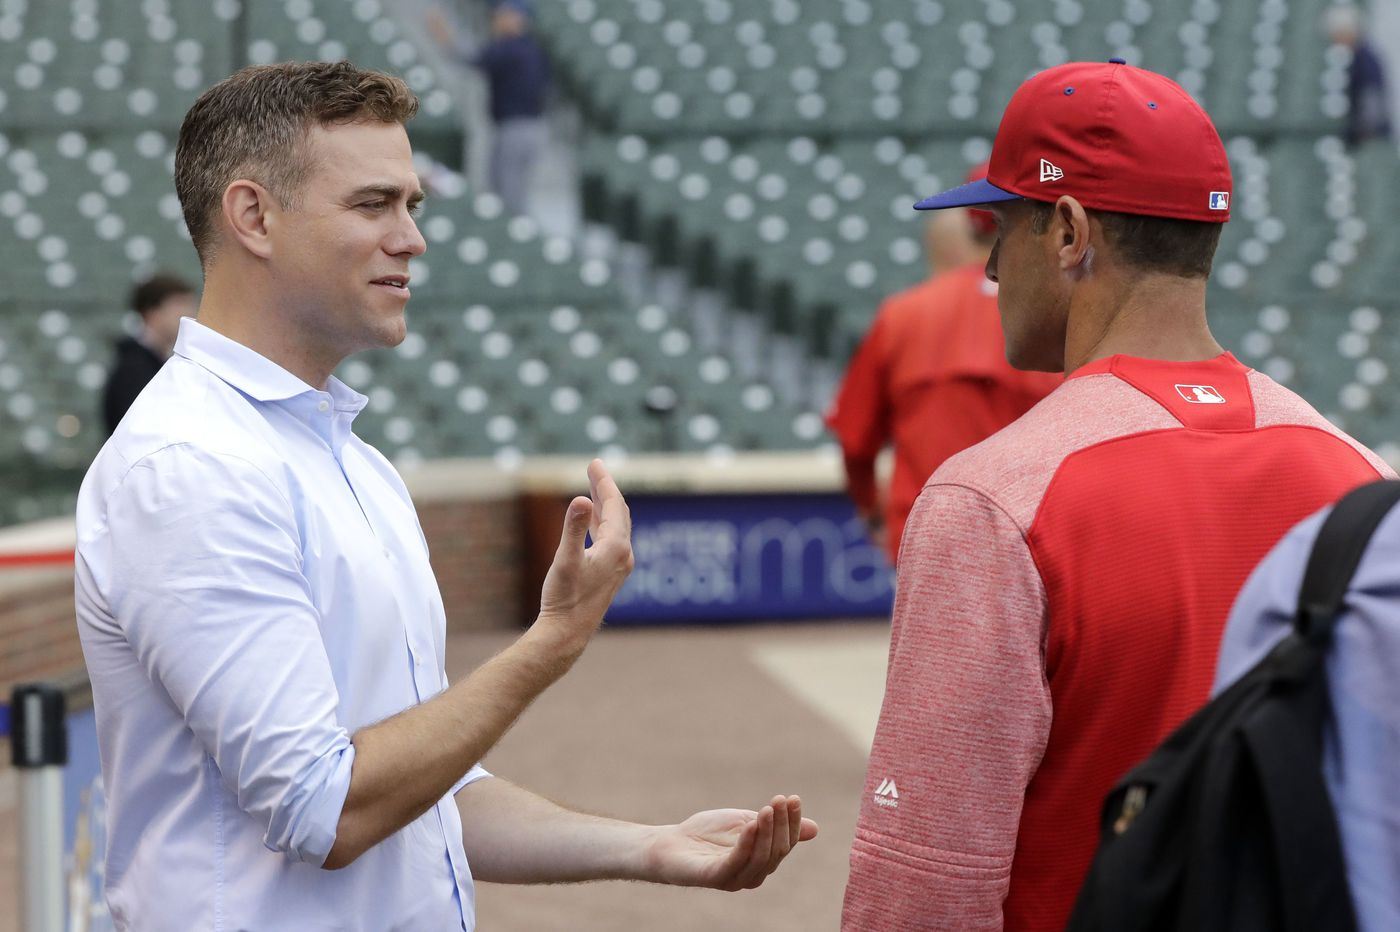 Theo Epstein's ambitions may be bigger than what the Phillies are willing to offer | Scott Lauber